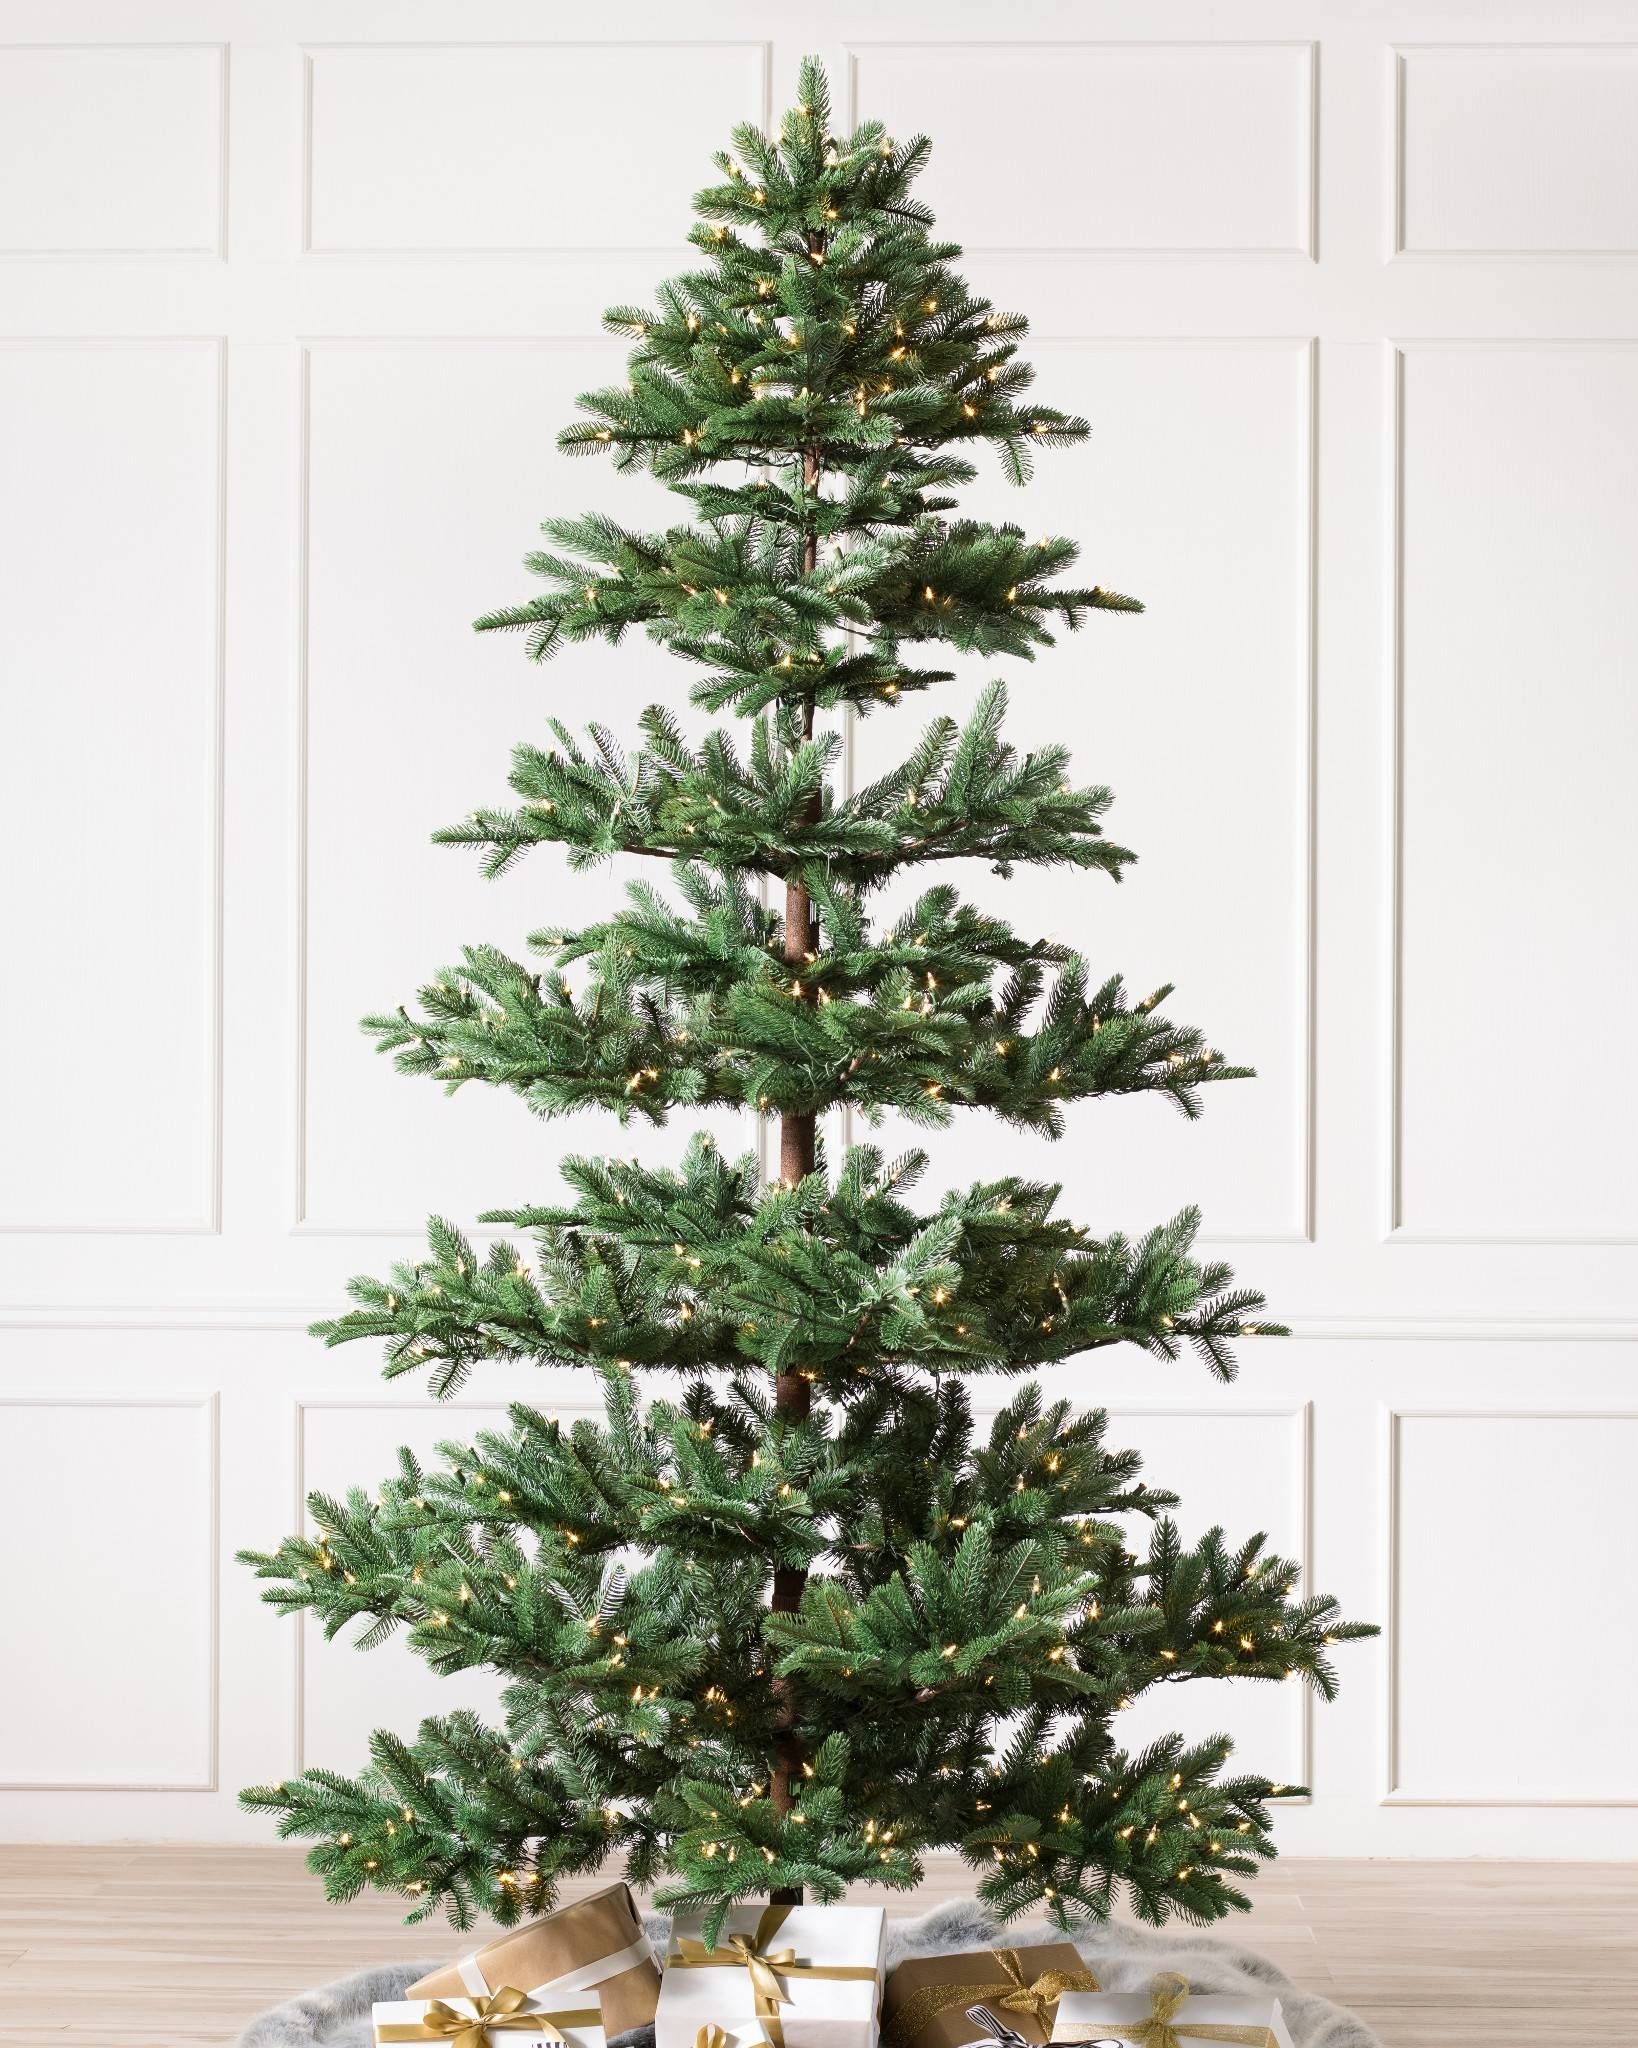 Mountain Fir Tree Noble fir christmas tree, Realistic